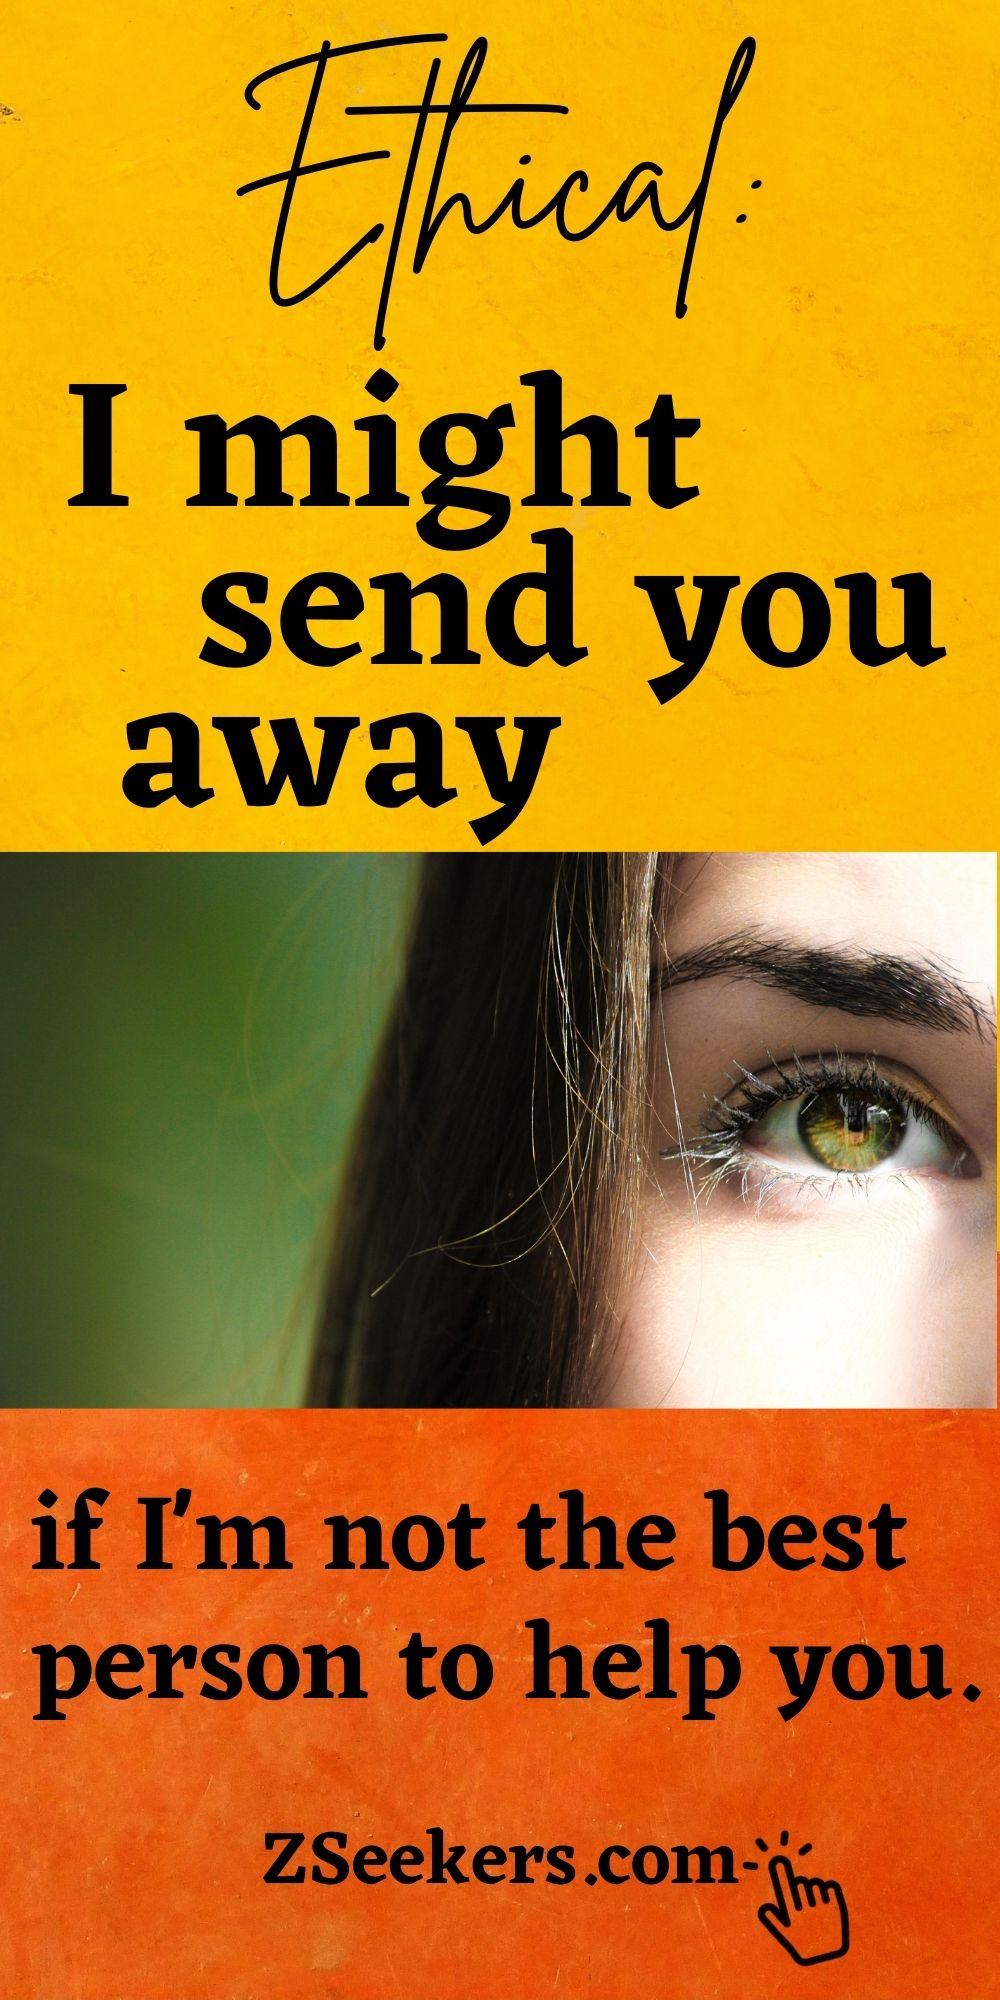 ethical send you away